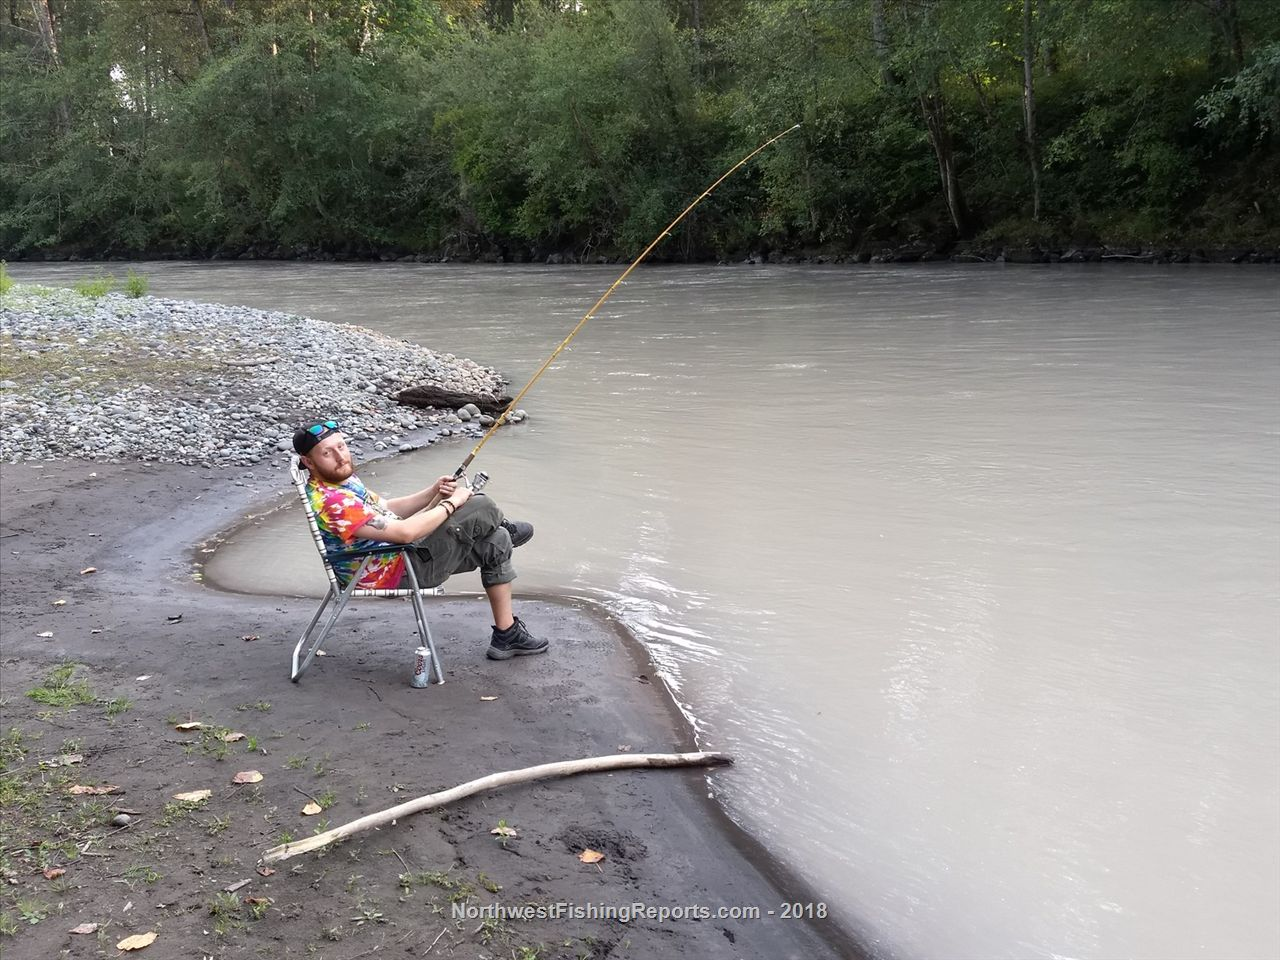 Puyallup River Report, Pierce County, WA - NWFR